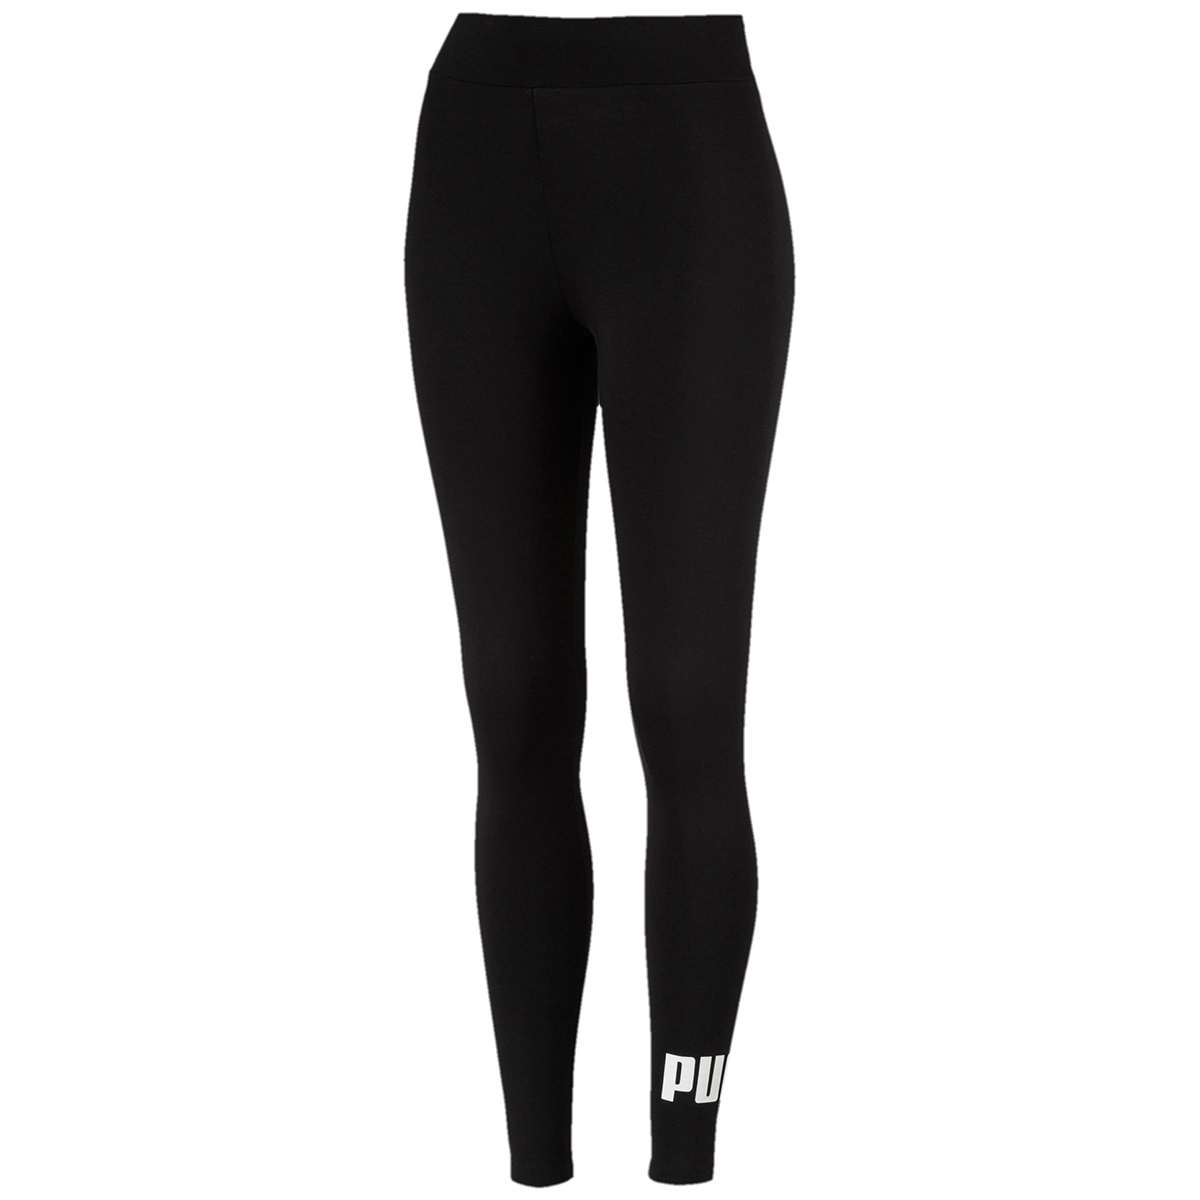 Puma Women's Mid Rise Essentials Logo Leggings - Black, XL